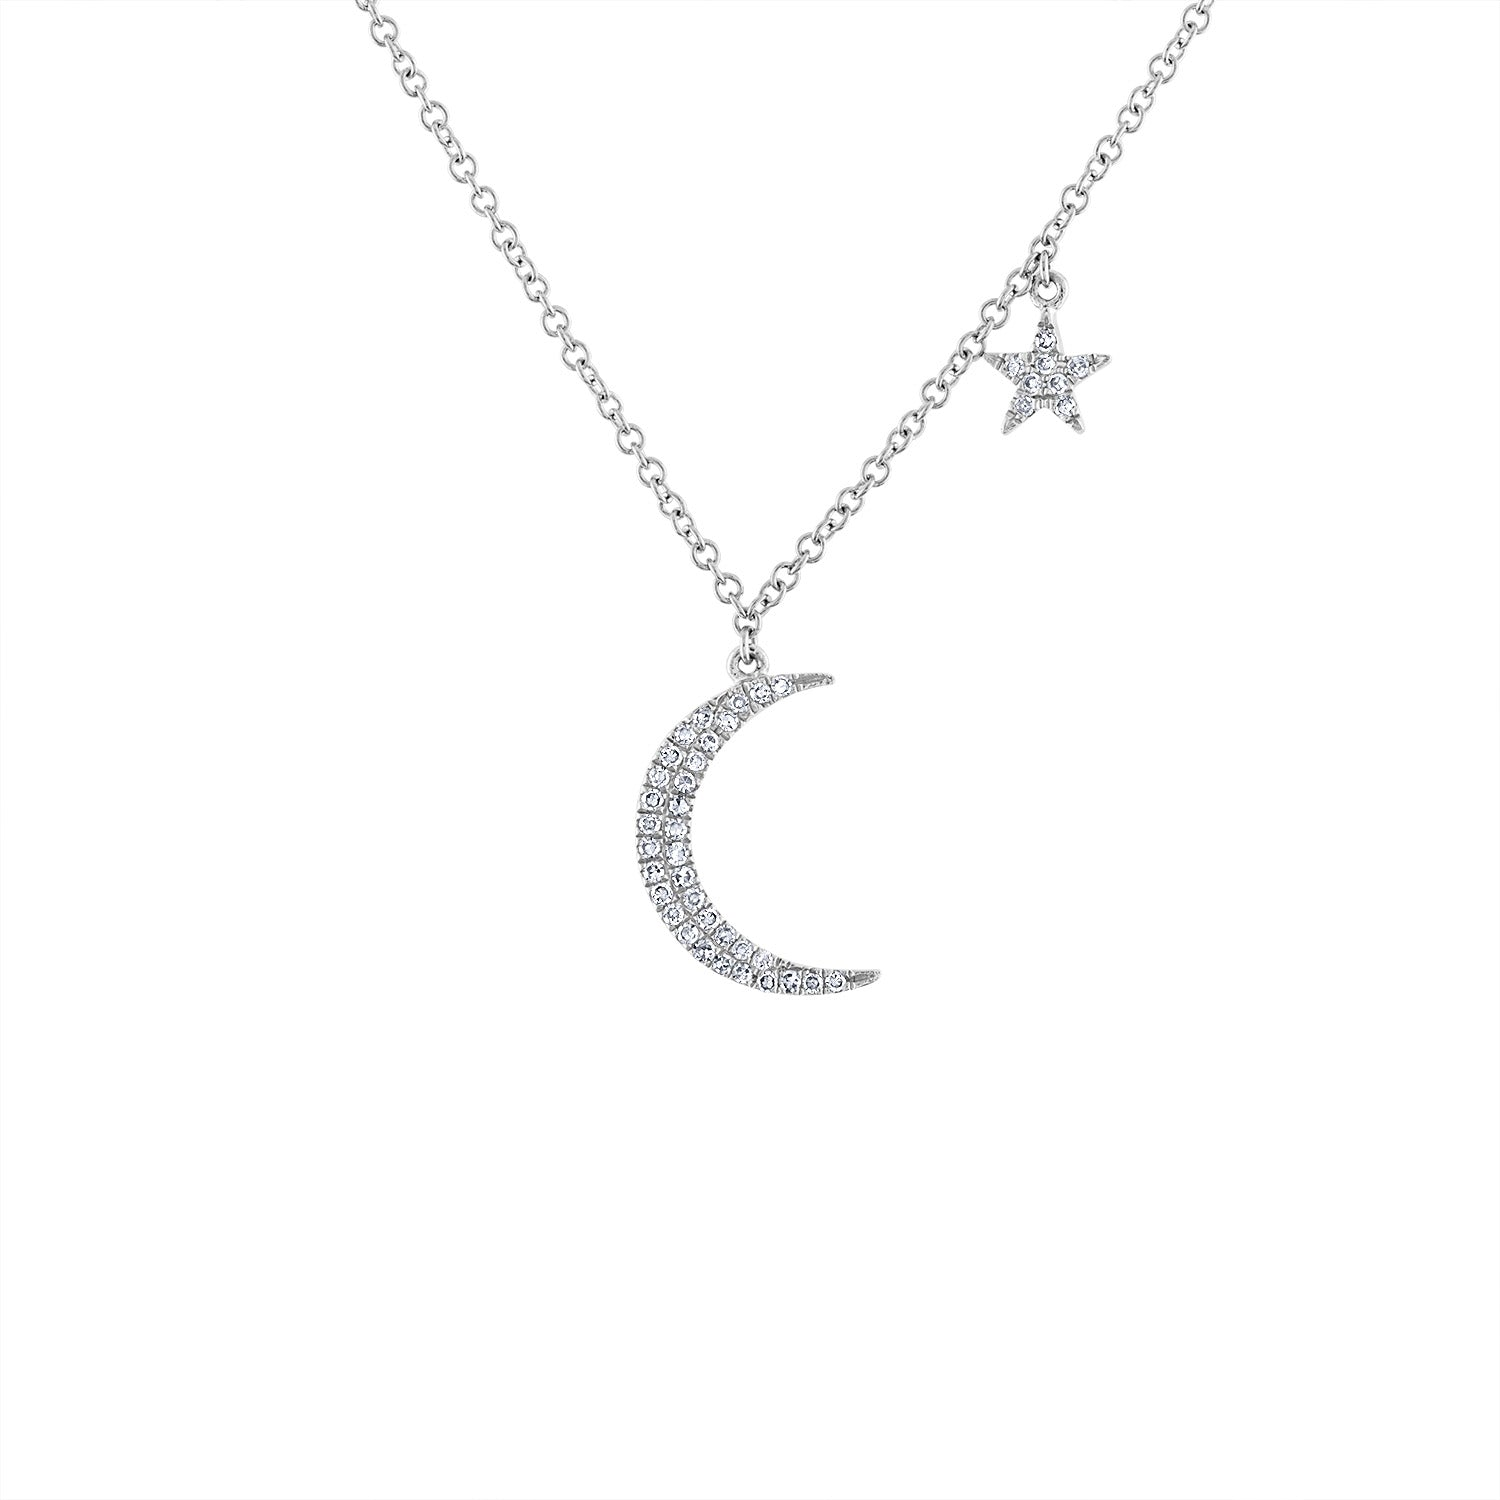 14KT GOLD DIAMOND CRESCENT MOON & STAR NECKLACE